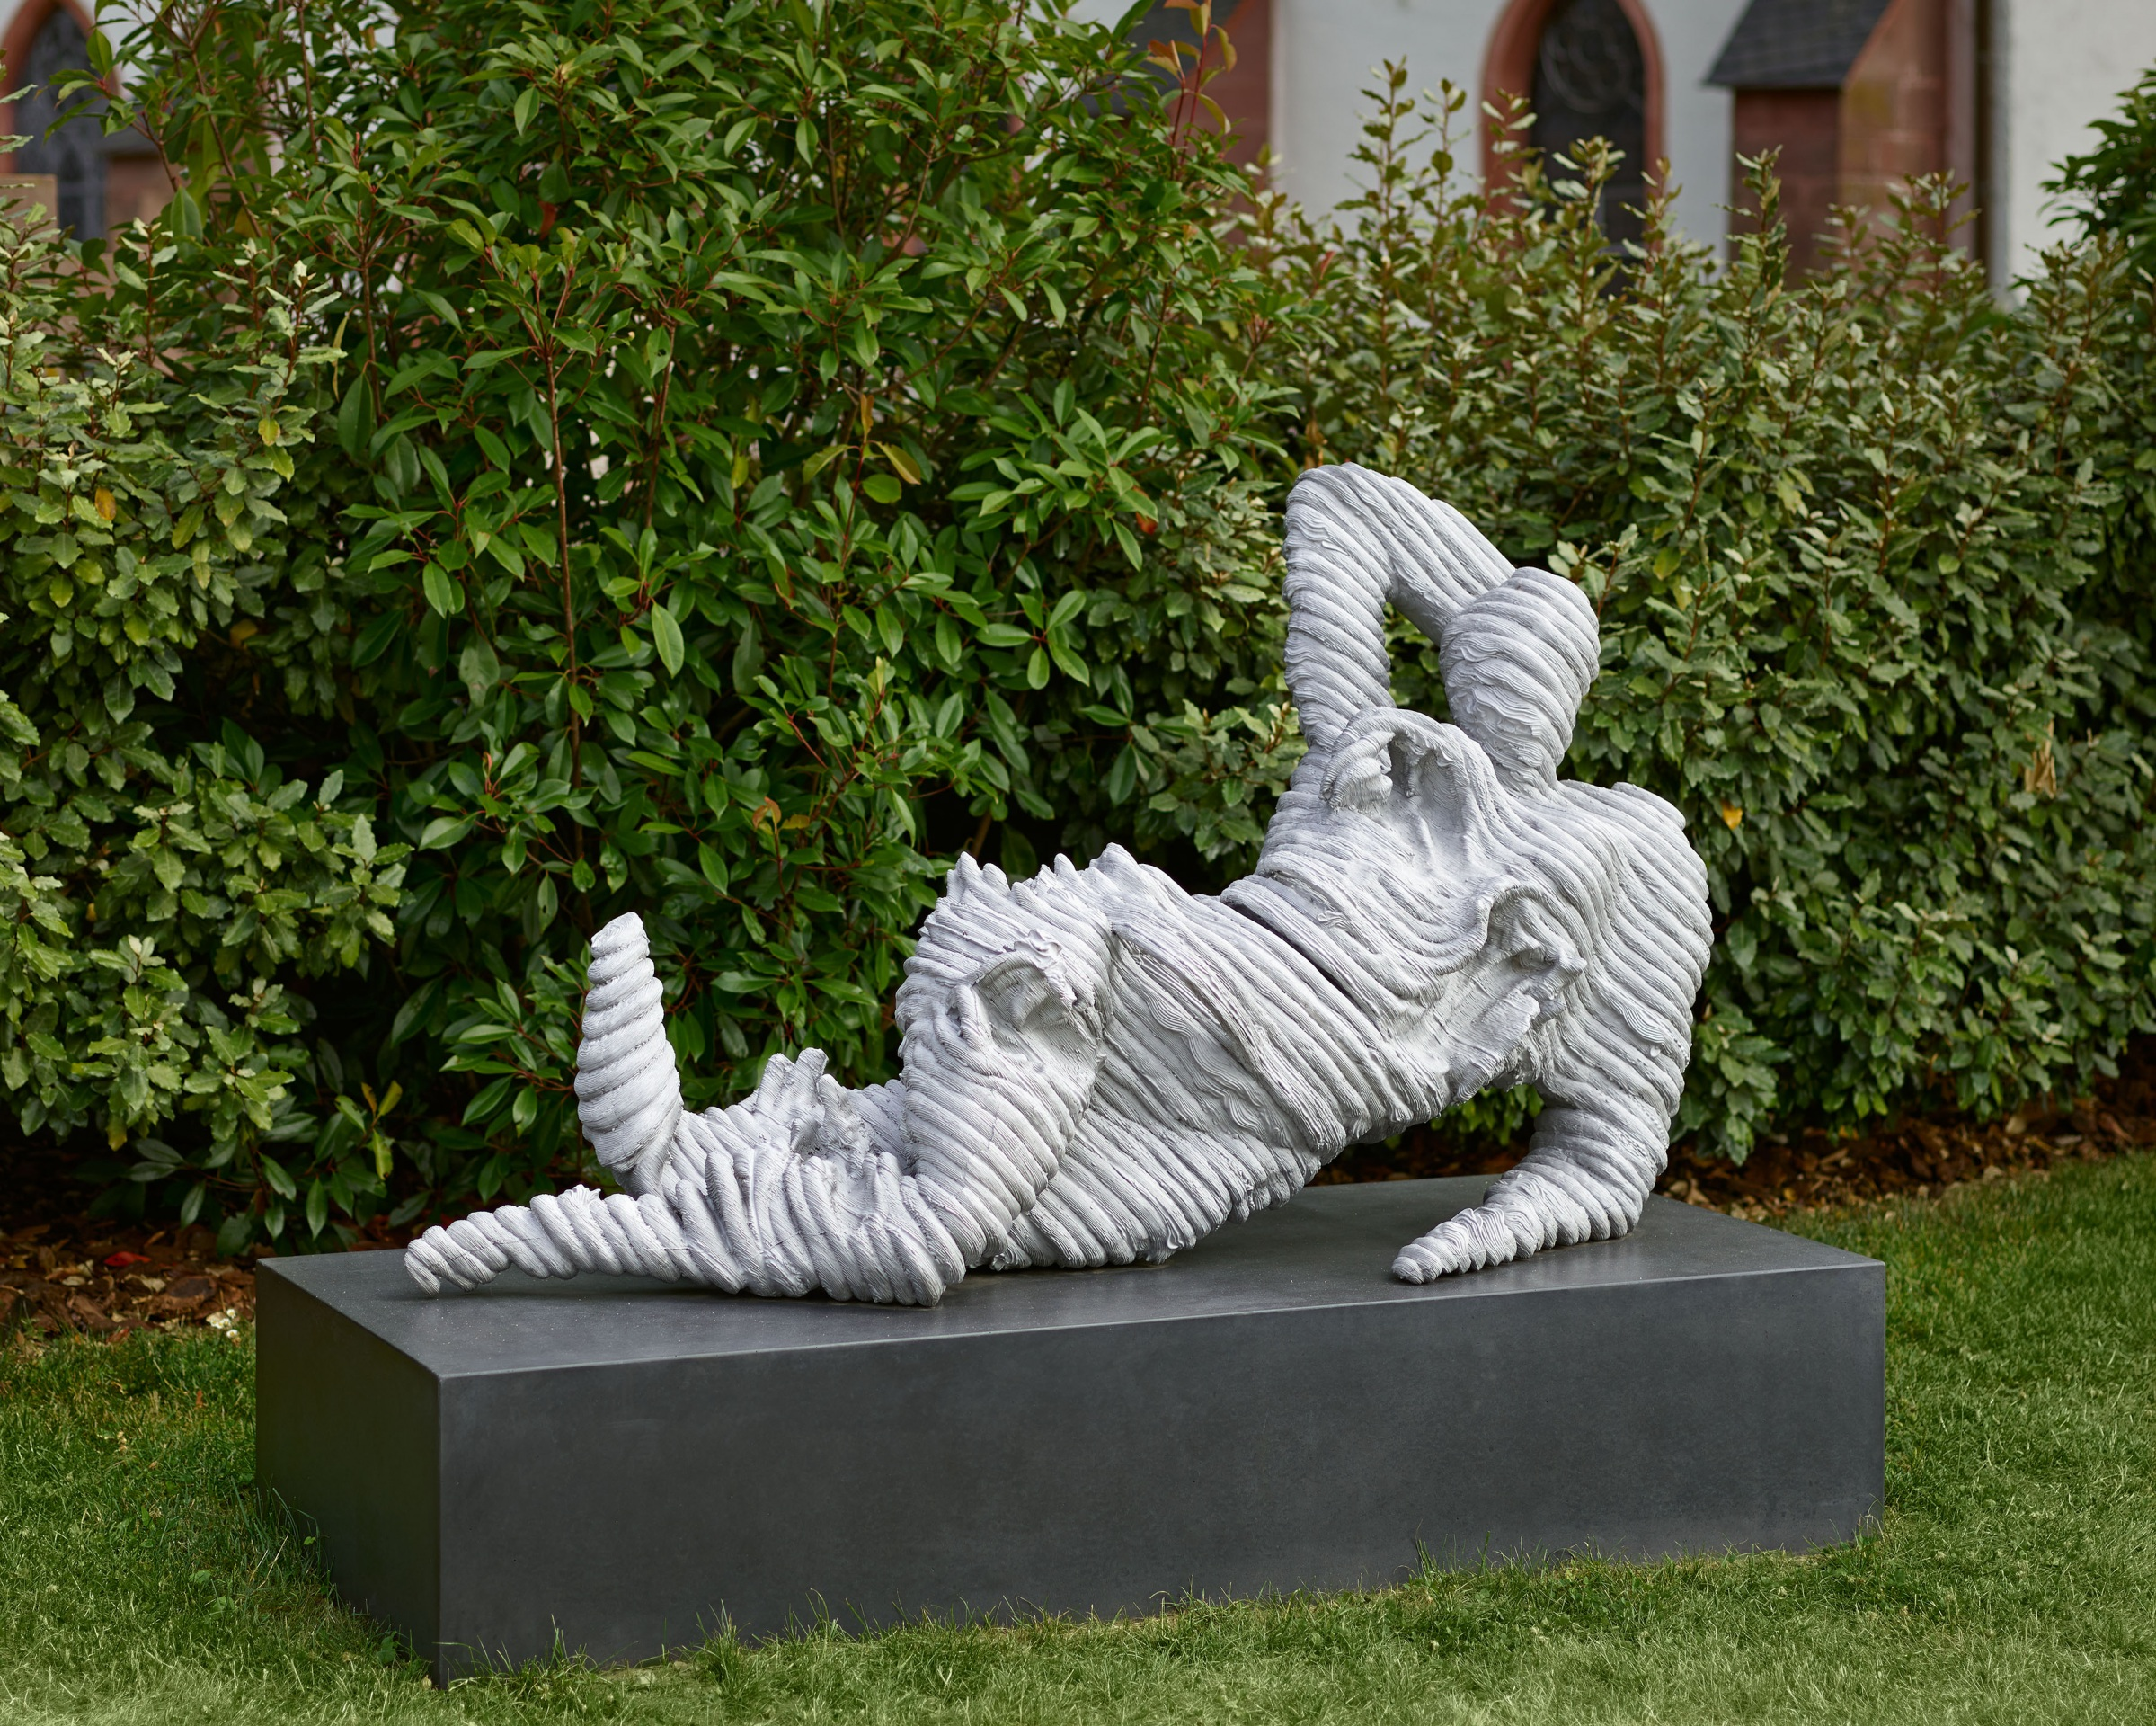 Toby Ziegler, Self-portrait as reclining nude II, 2017, Aluminiumguss, Skulptur: 85 x 153 x 57 cm.; 33 1/2 x 60 1/4 x 22 1/2 in., Sockel : 34 x 176.6 x 73.6 cm.; 13 3/8 x 69 1/2 x 29 in.